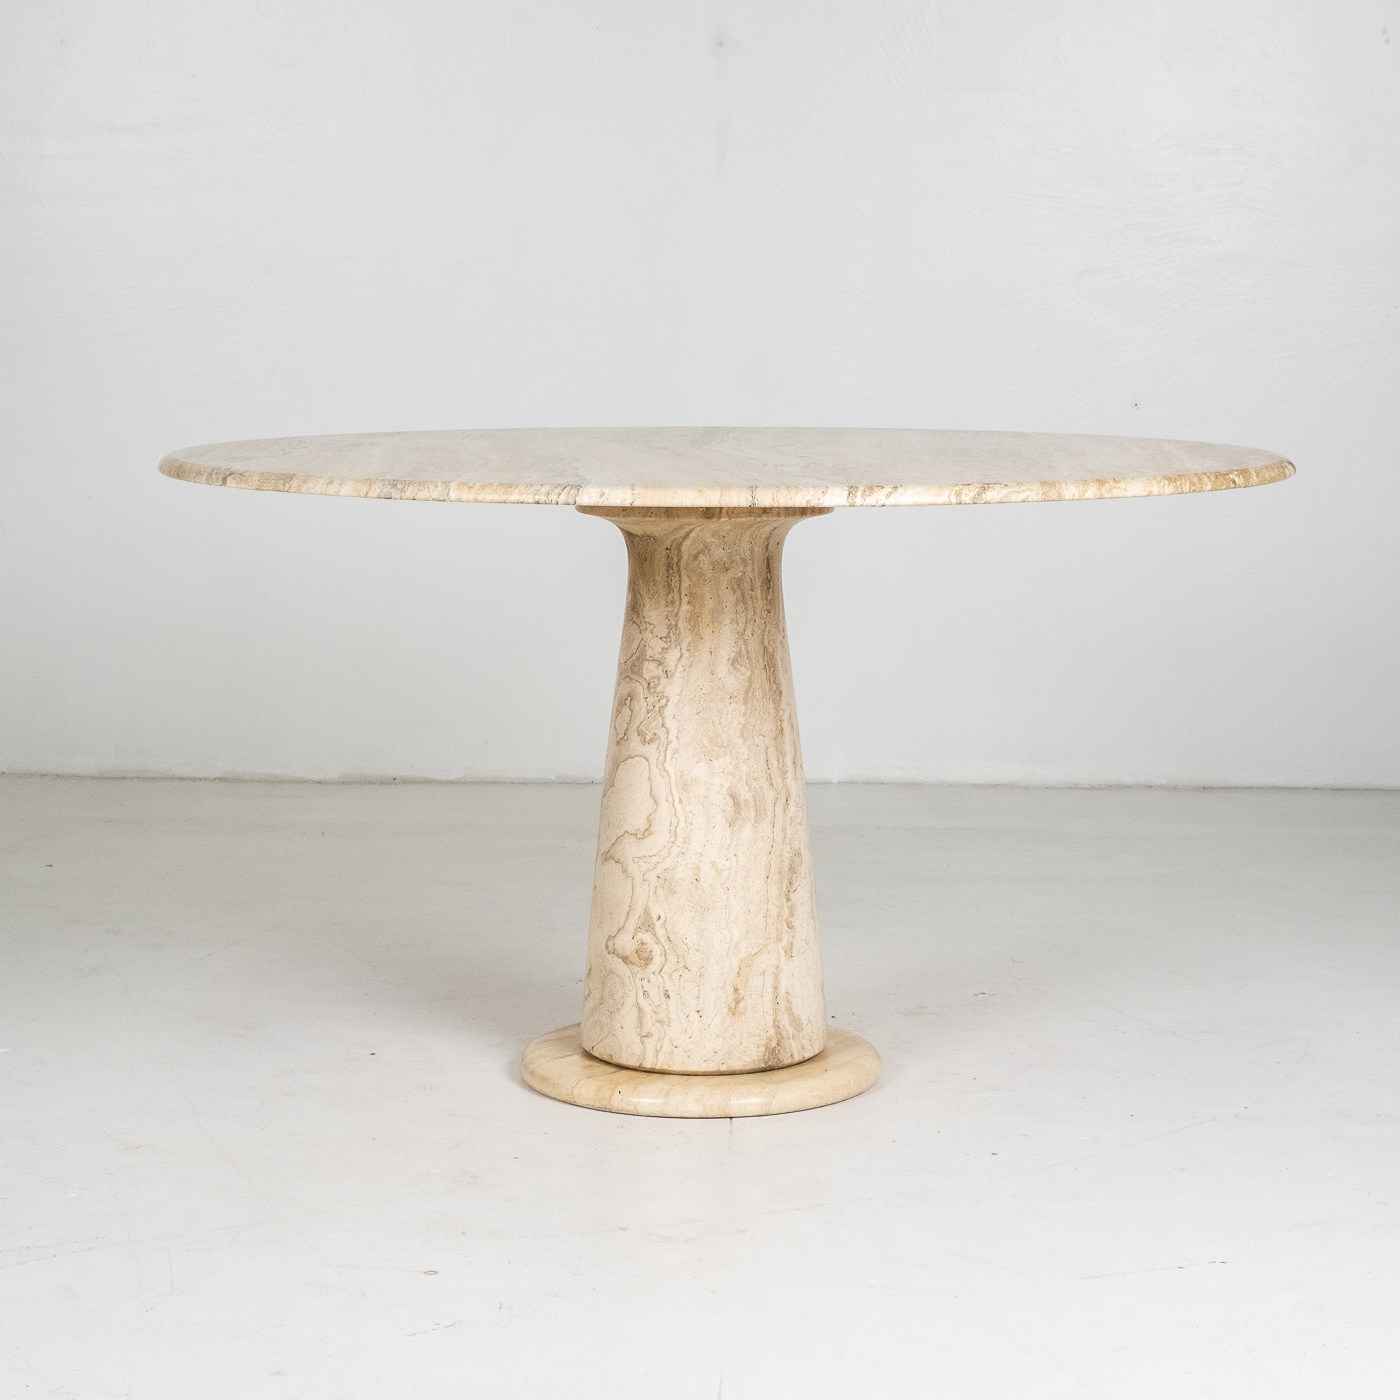 Round Travertine Dining Table In The Style Of The M1 By Angelo Mangiarotti, 1980s, Italy 75